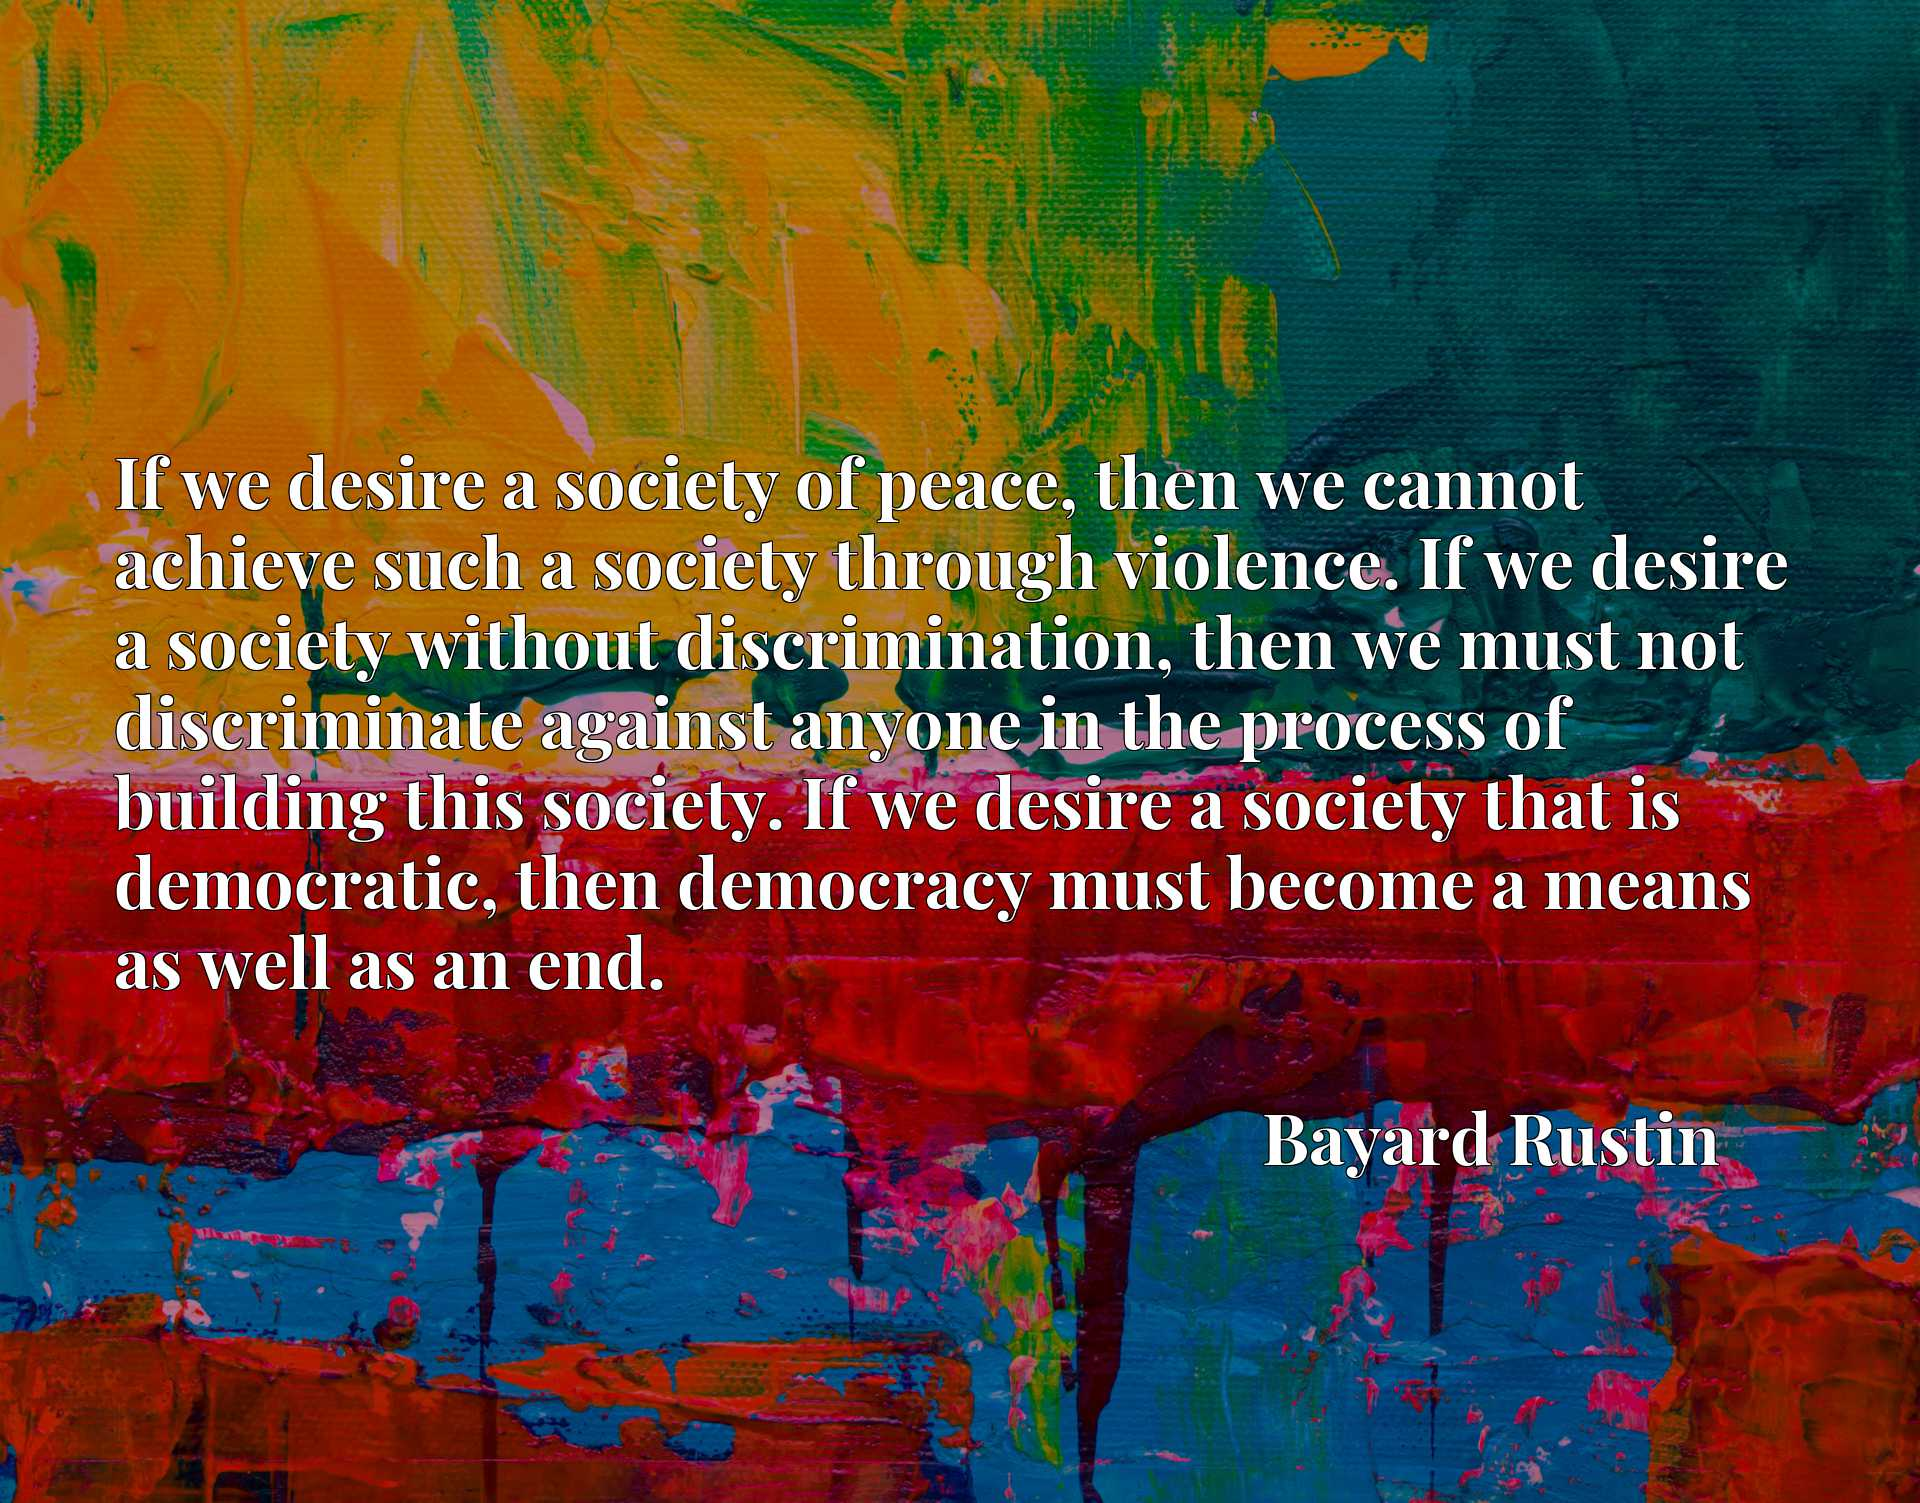 If we desire a society of peace, then we cannot achieve such a society through violence. If we desire a society without discrimination, then we must not discriminate against anyone in the process of building this society. If we desire a society that is democratic, then democracy must become a means as well as an end.